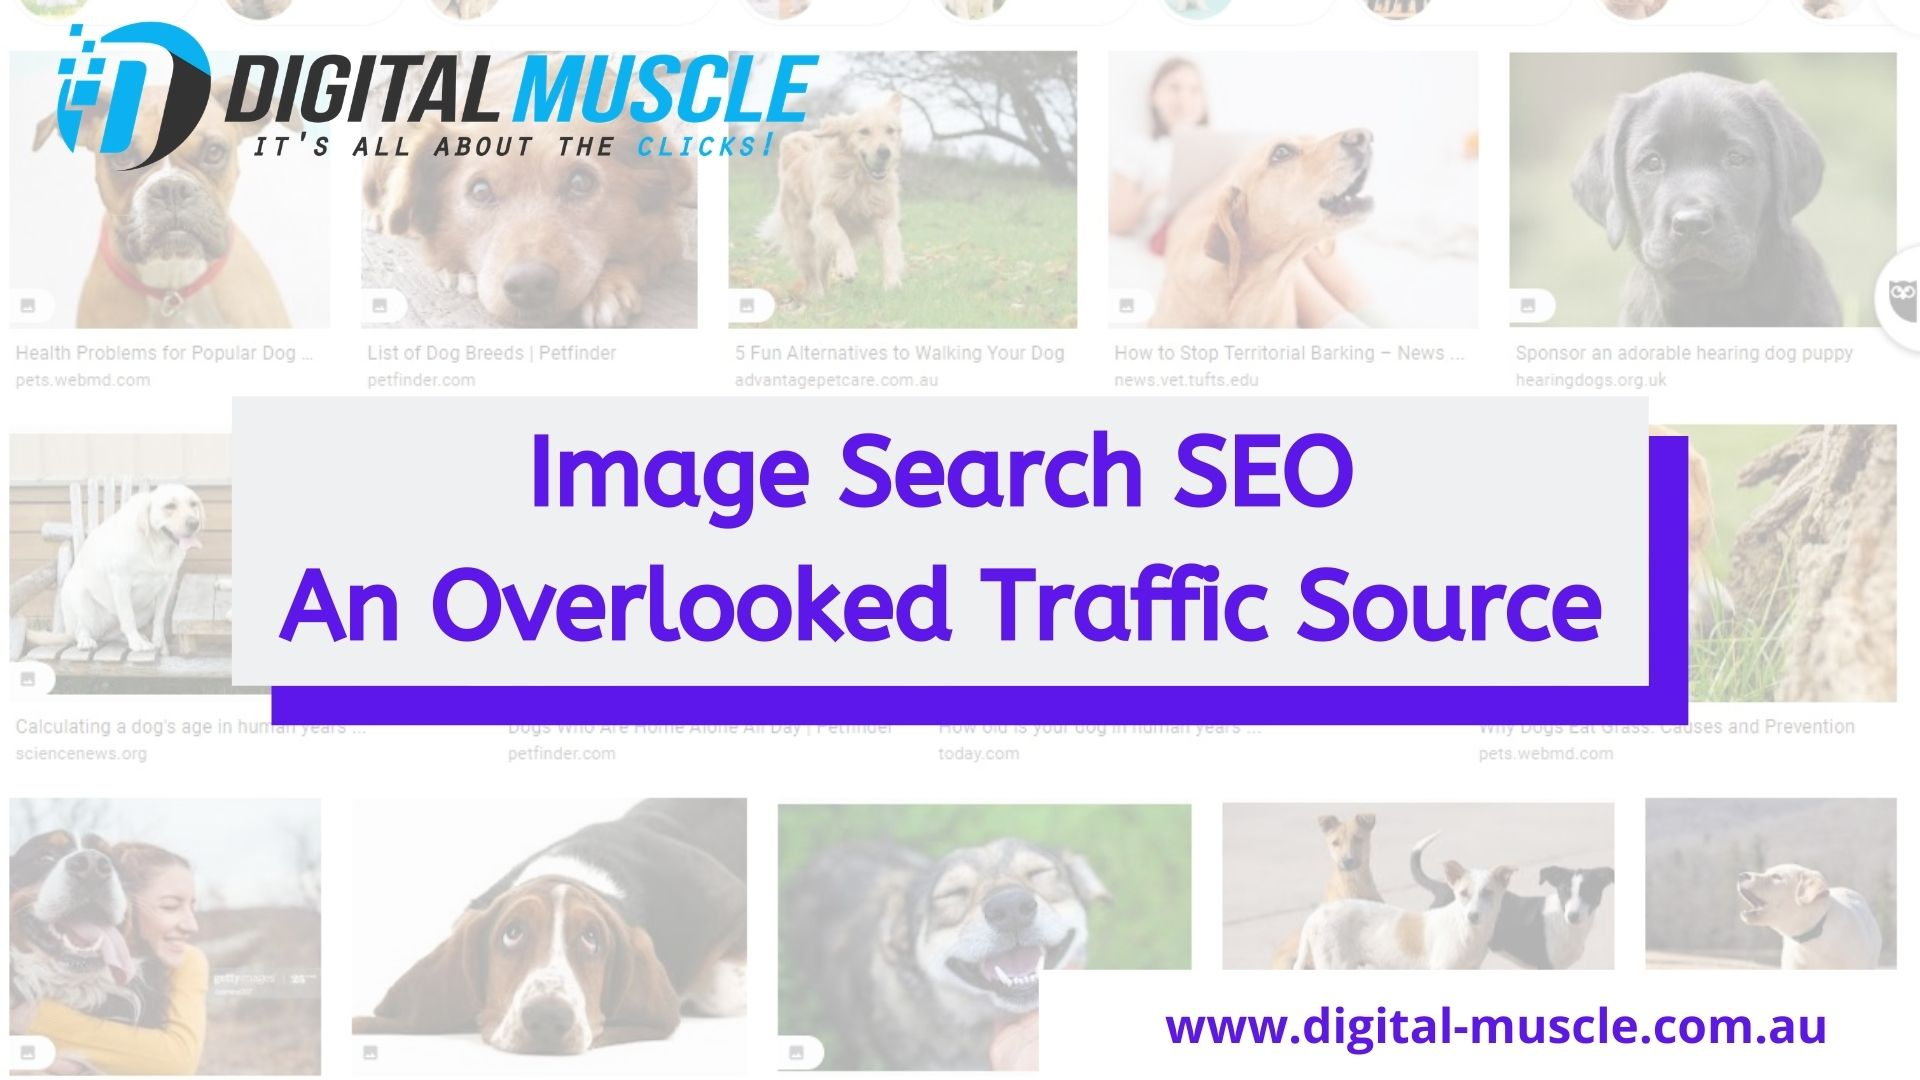 Image Search SEO - An Overlooked Traffic Source You Should Use Now